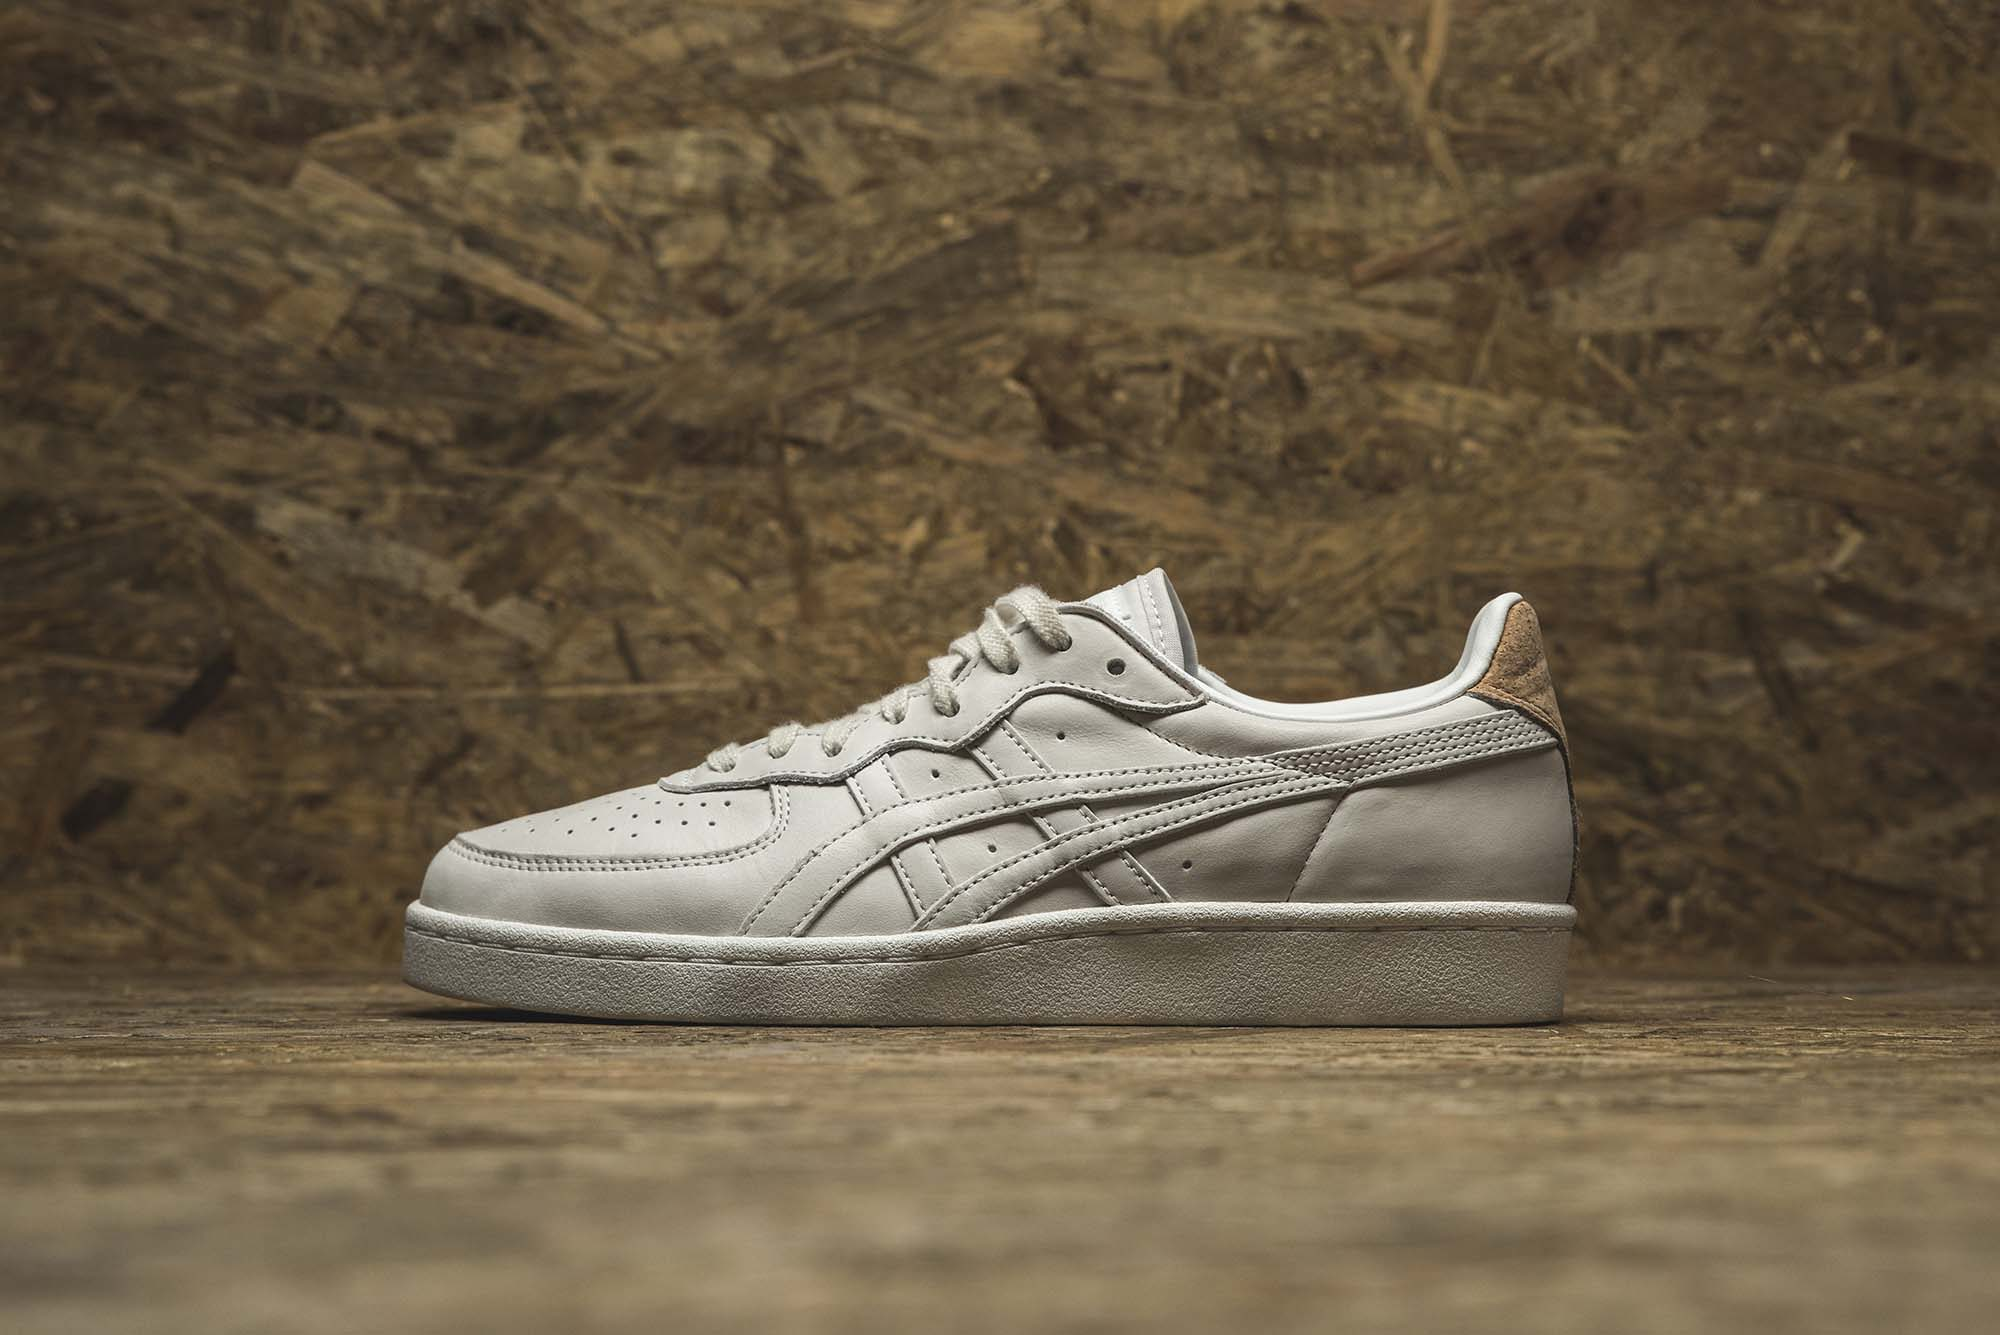 onitsuka-tiger-release-new-tiger-mhs-and-saga-series-02